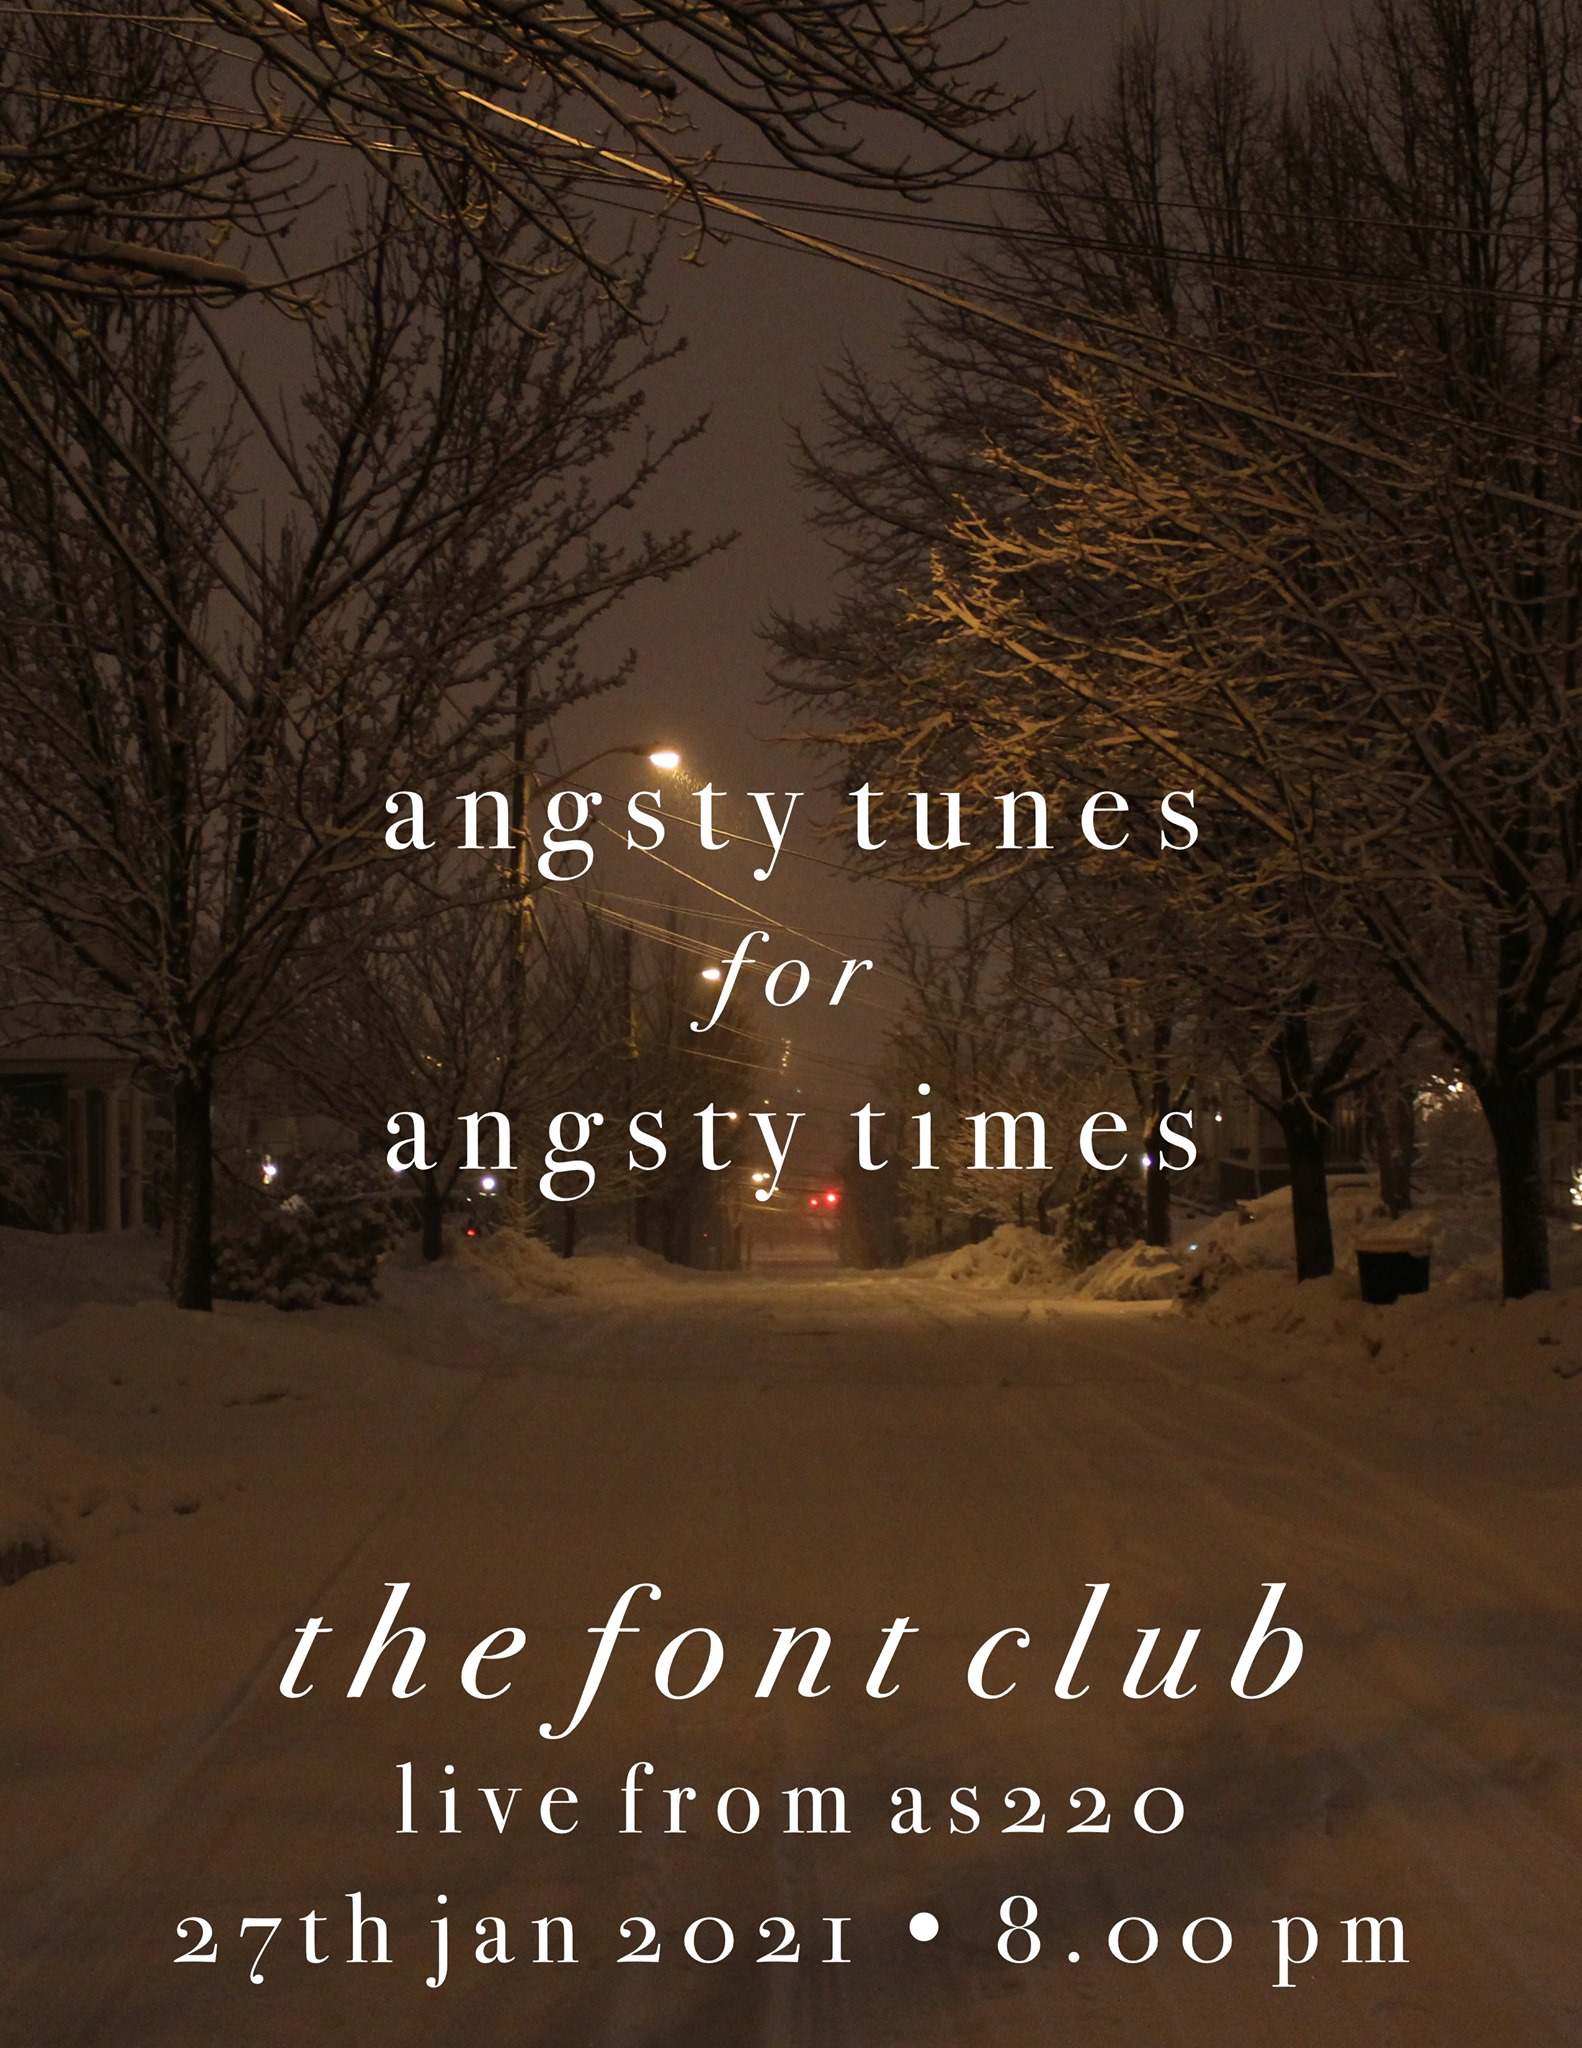 Angsty Tunes for Angsty Times - The Font Club Livestream